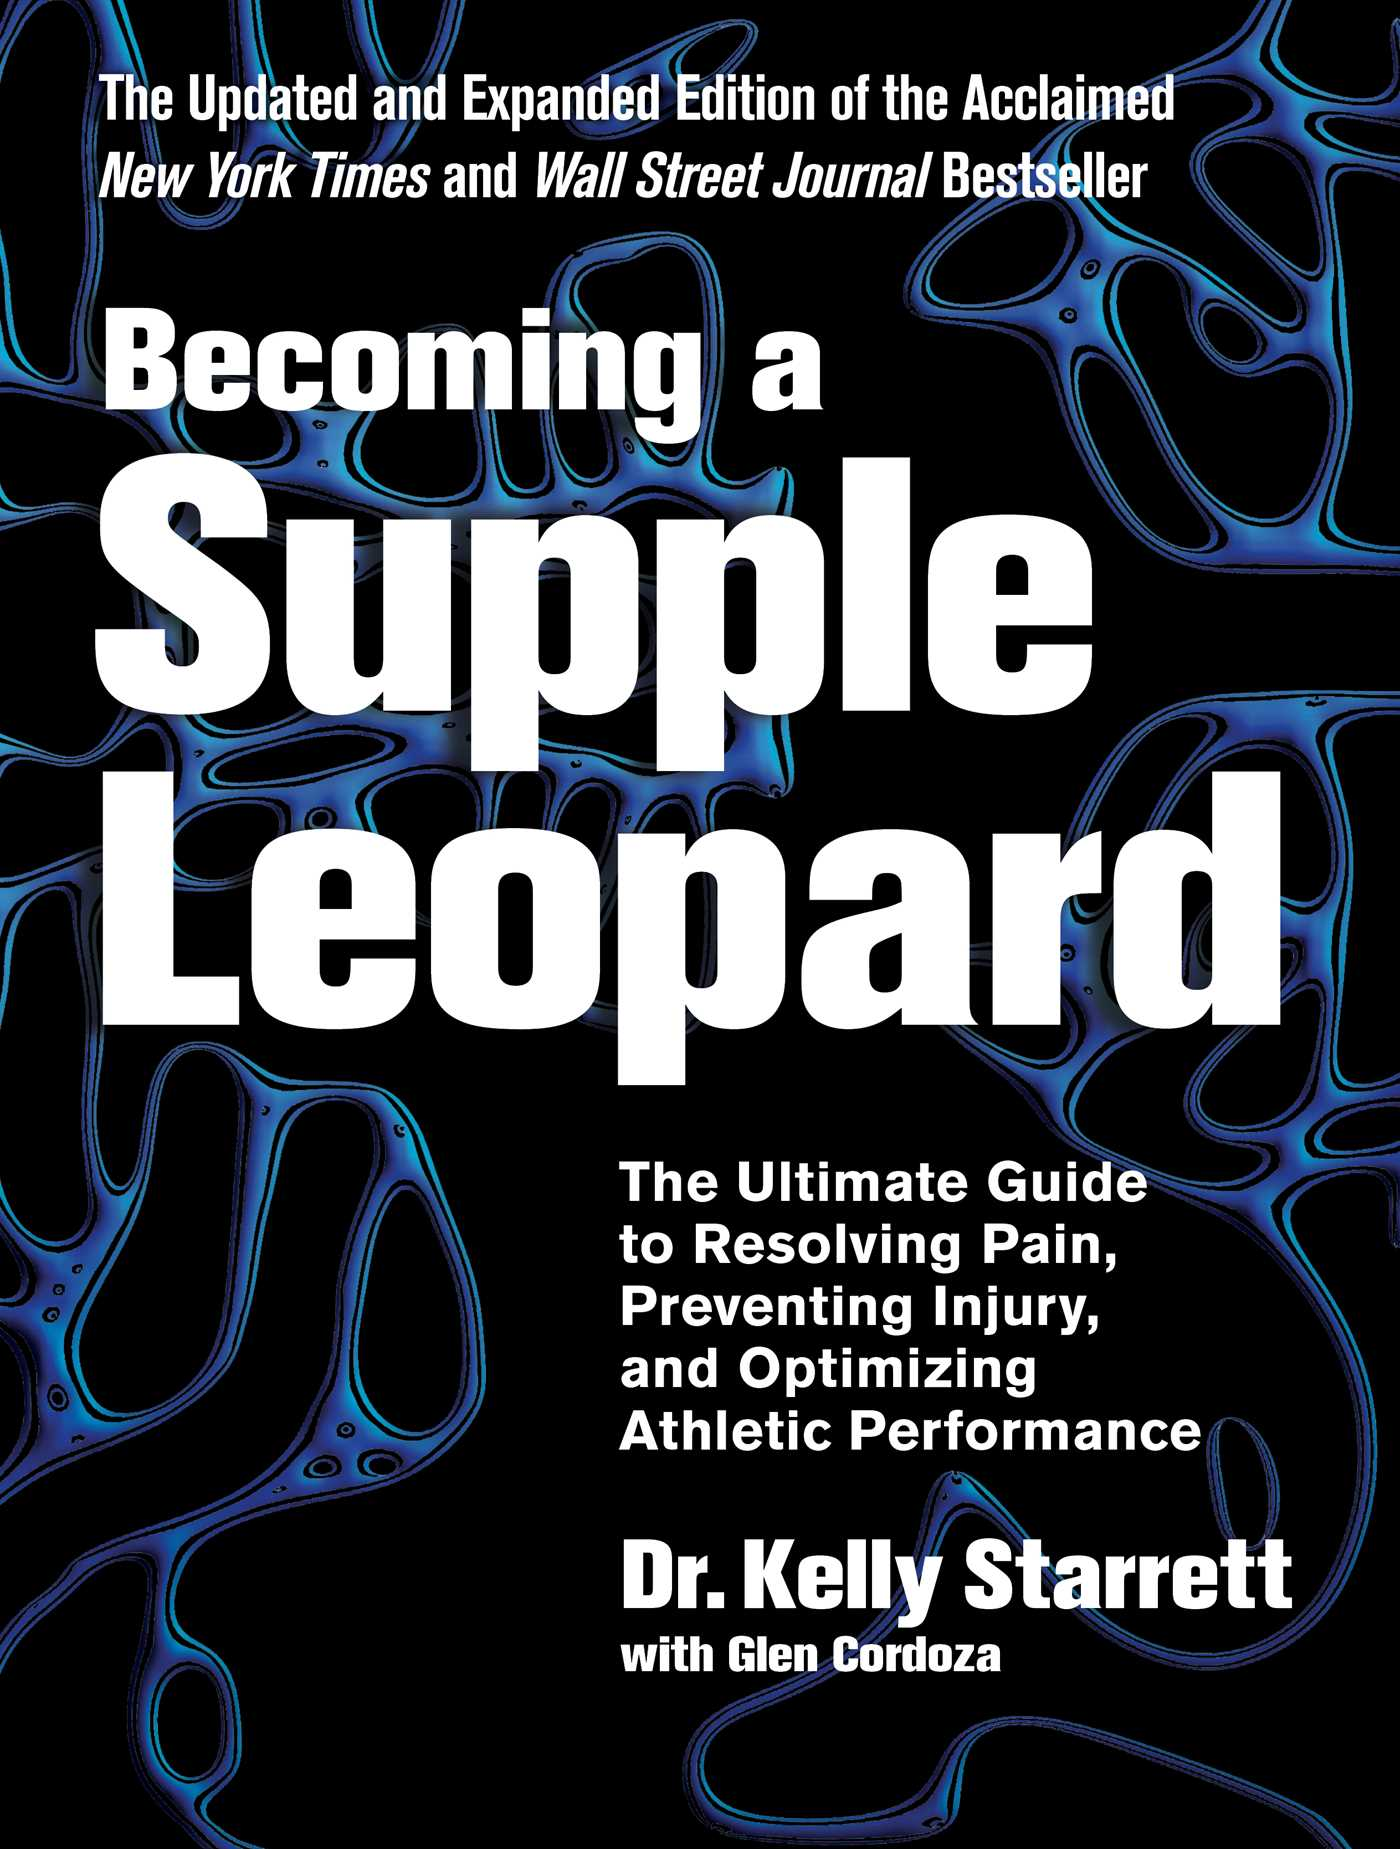 https://fasterskier.com/wp-content/blogs.dir/1/files/2018/12/becoming-a-supple-leopard-2nd-edition-9781628600834_hr.jpg